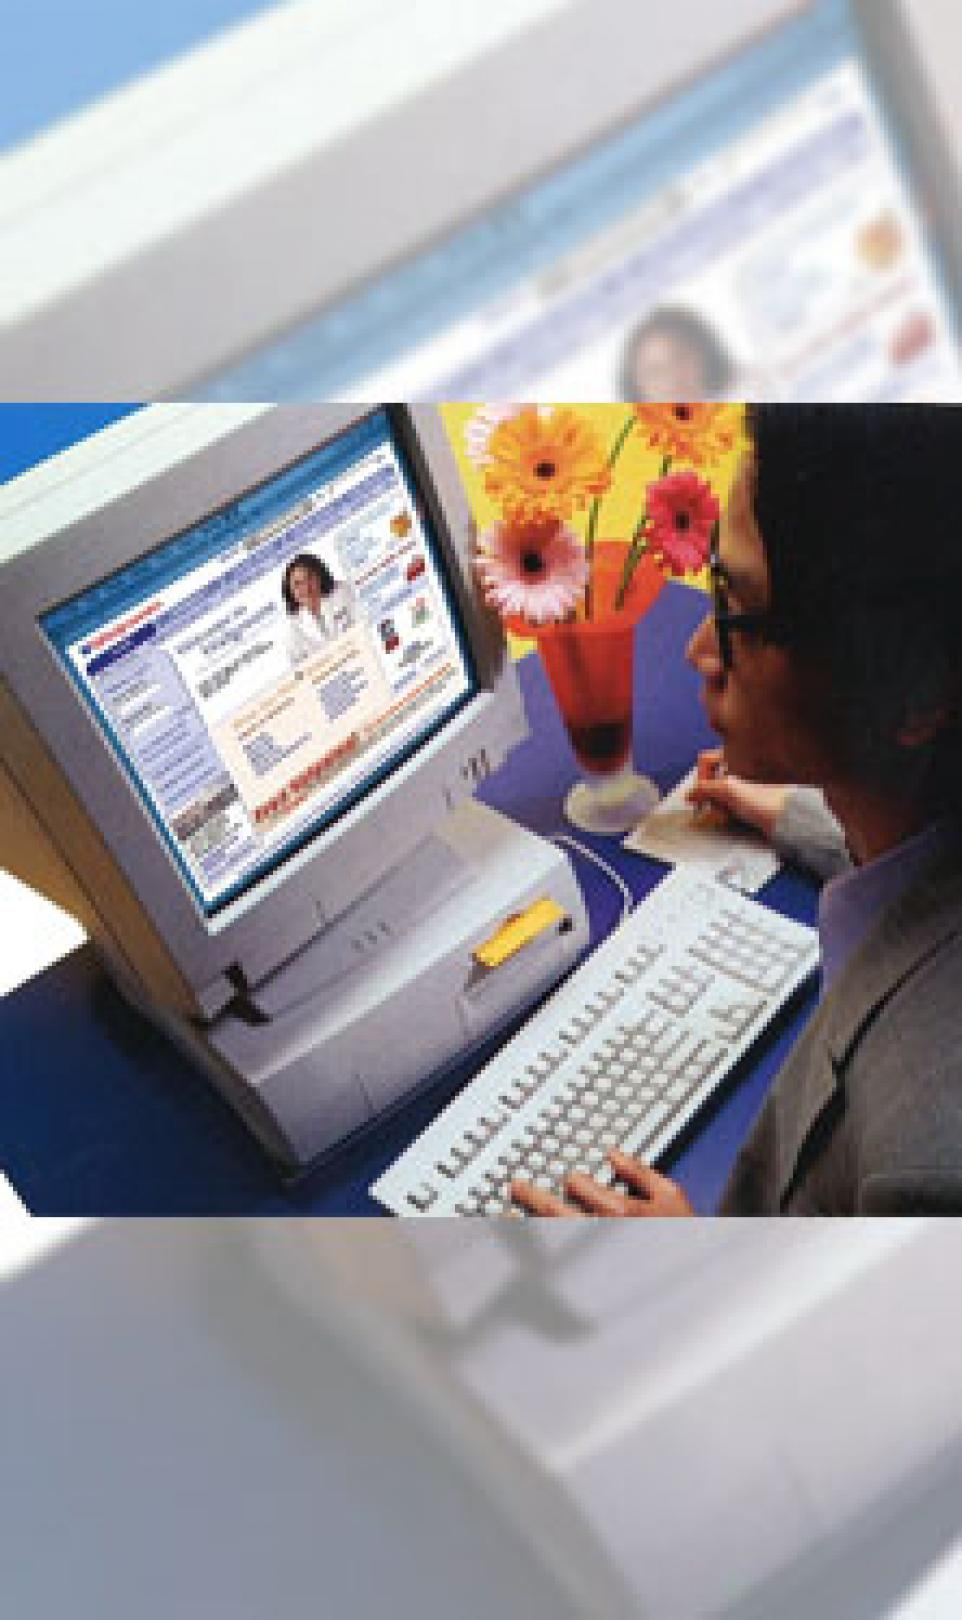 A woman using a 90's computer to access the Walgreens.com online pharmacy